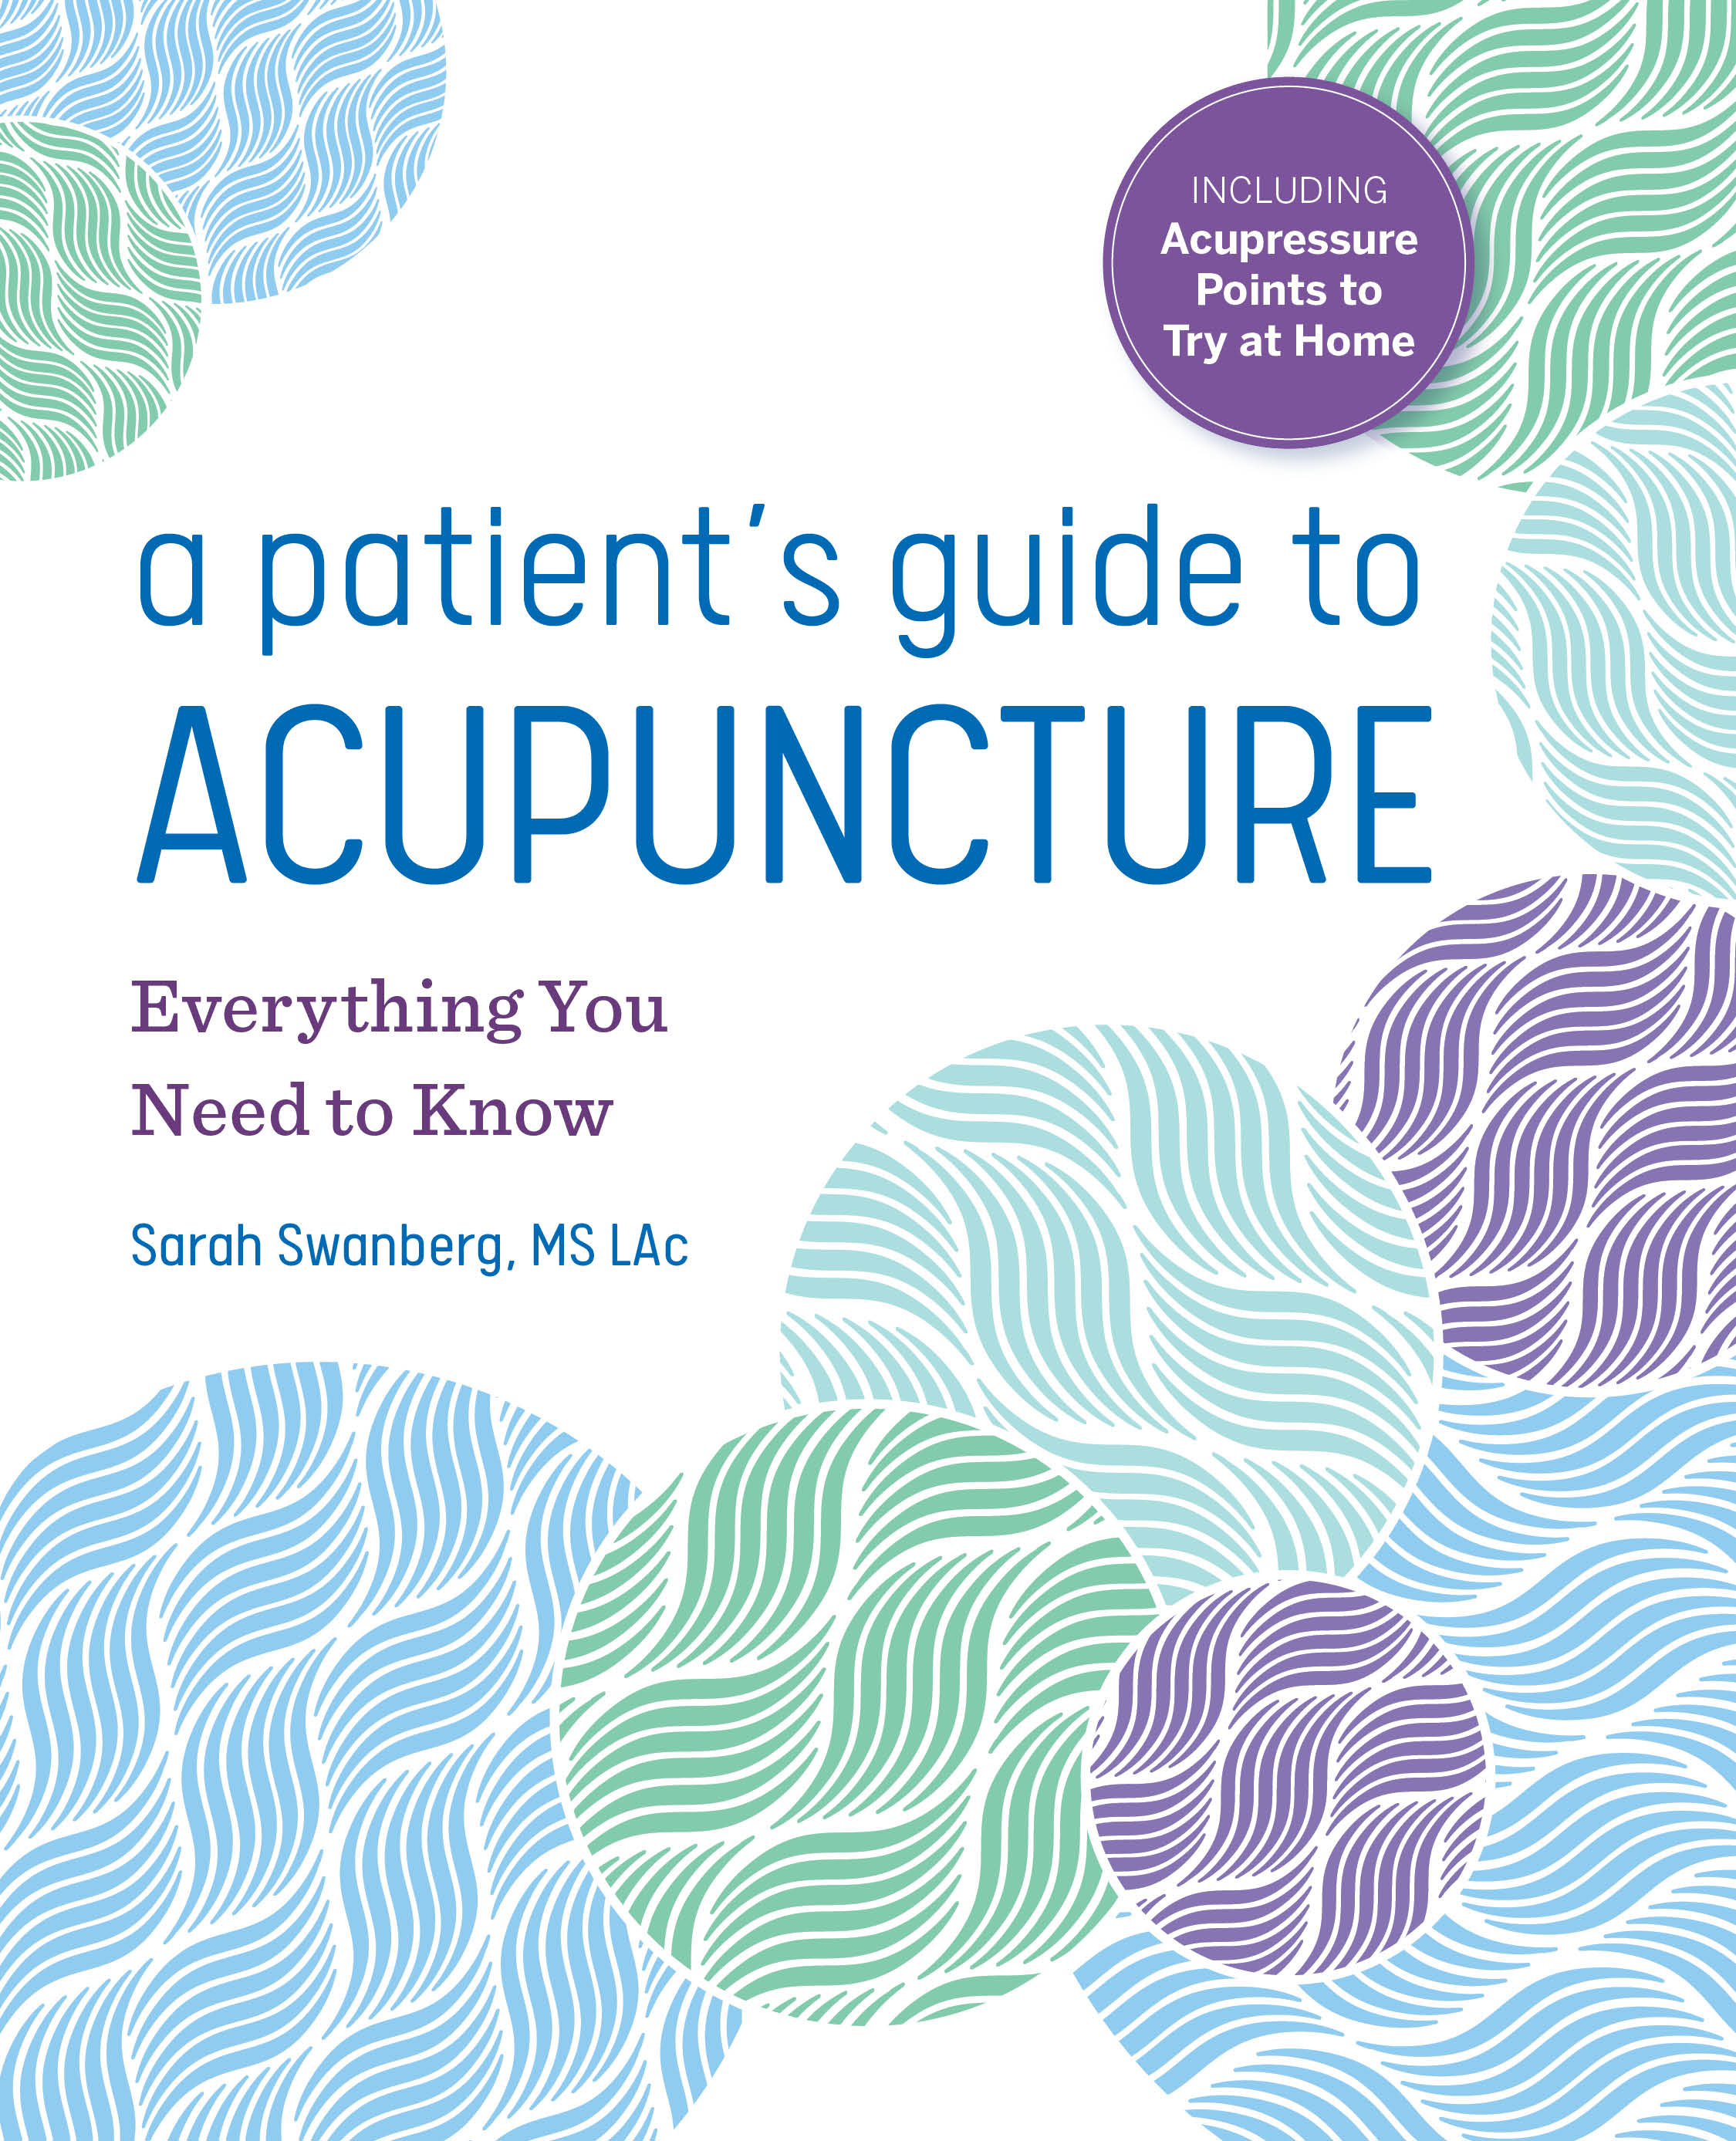 Cover_APatient'sGuideToAcupuncture.jpg